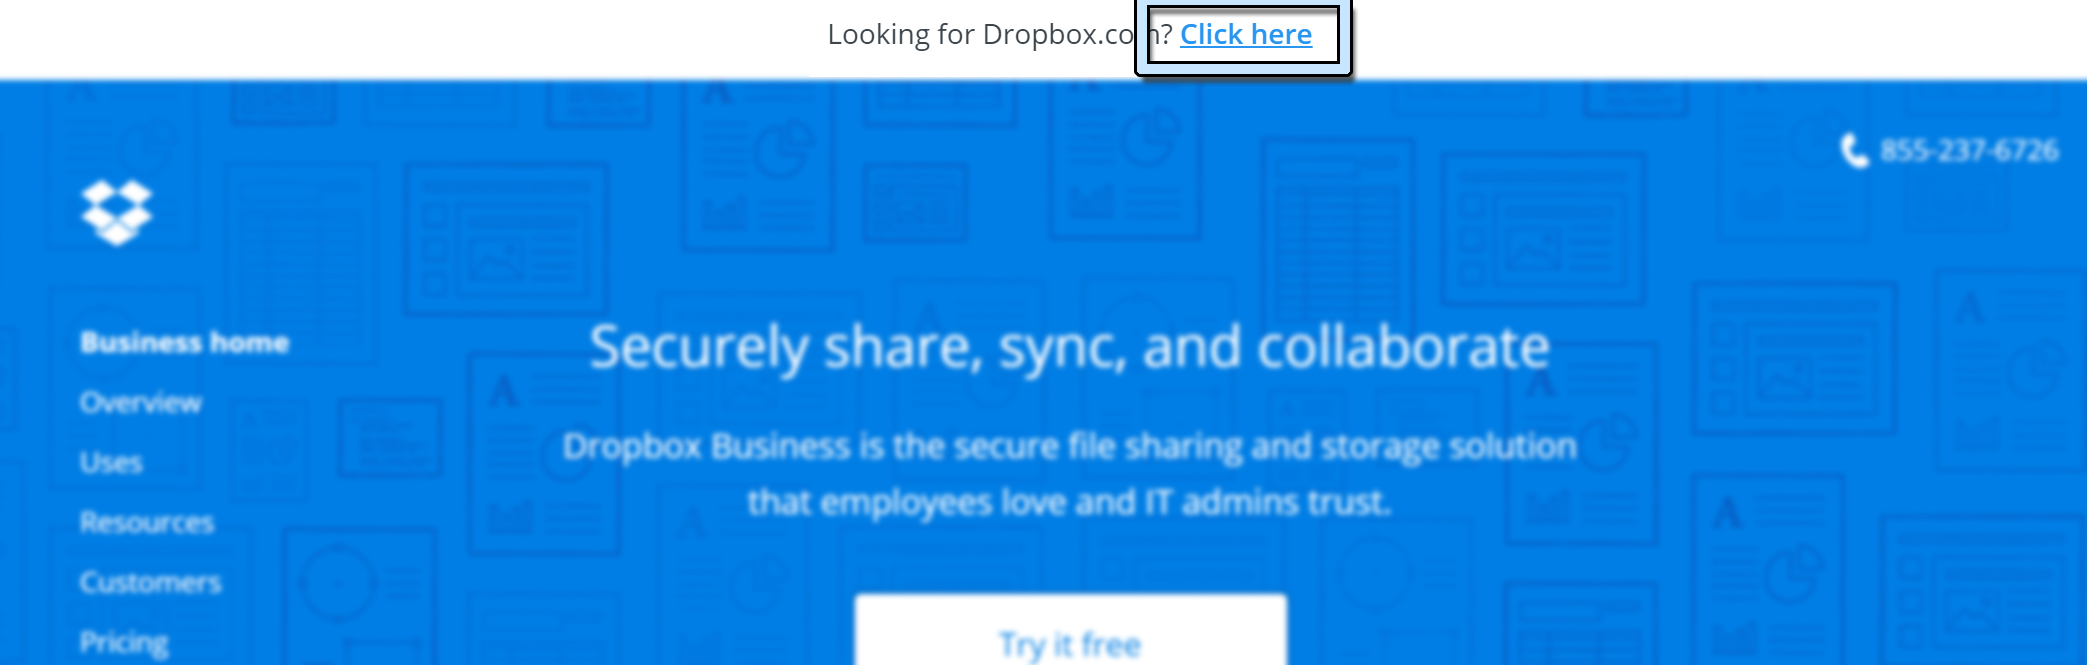 Dropbox For Business首页